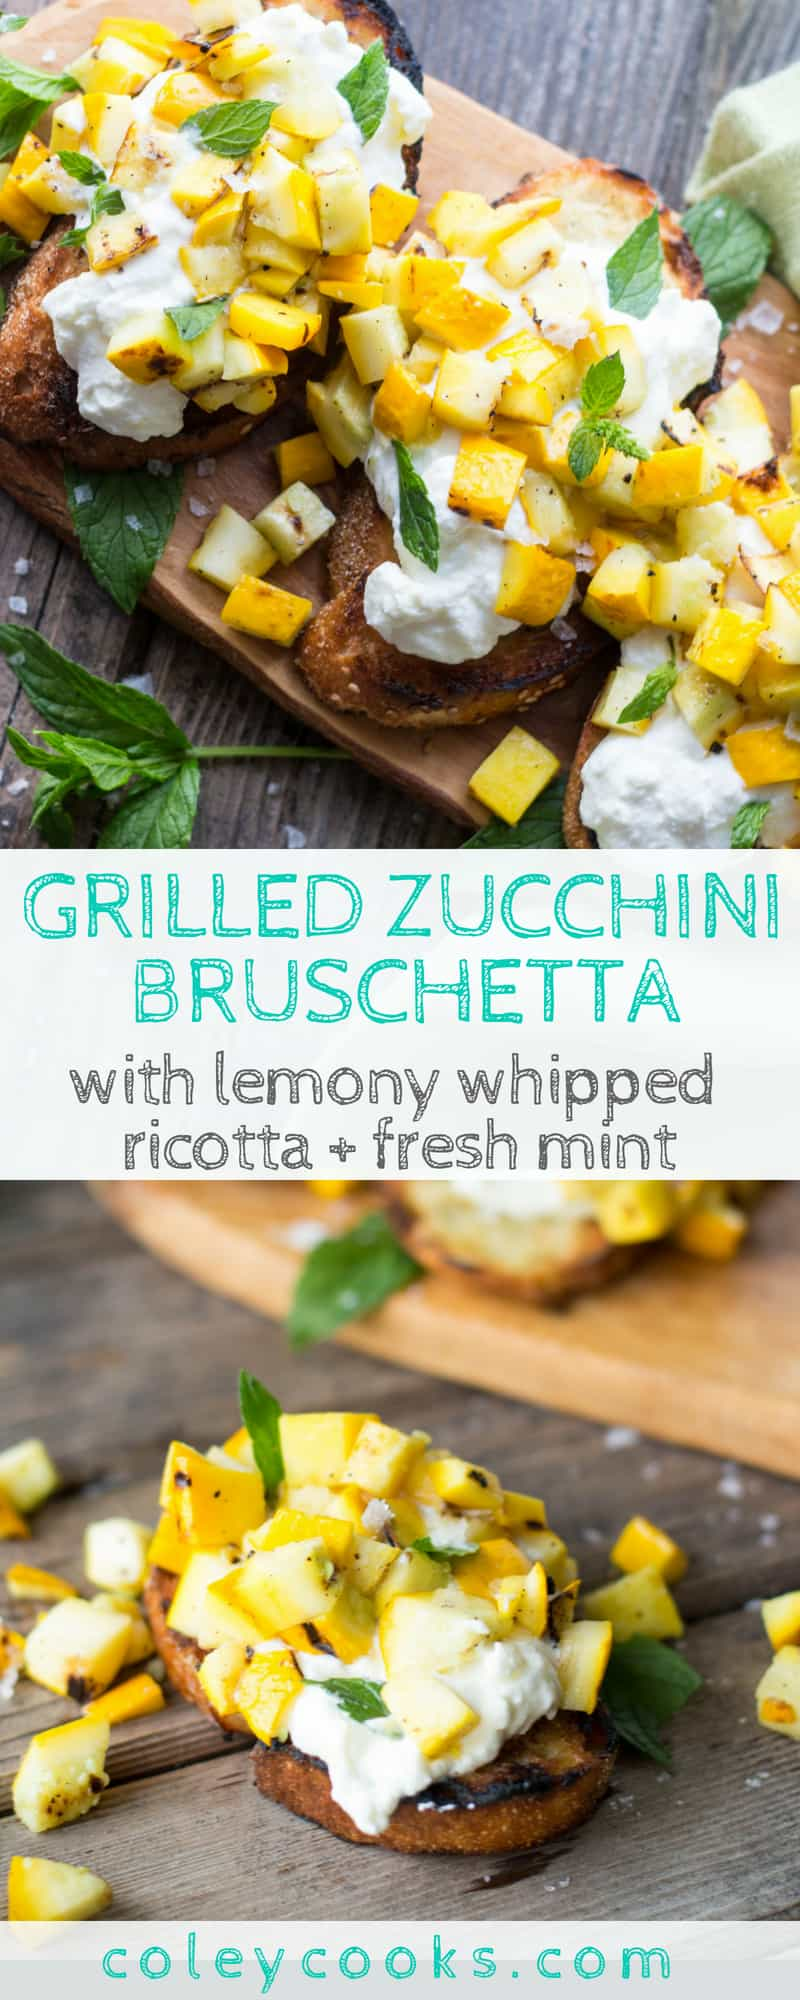 GRILLED ZUCCHINI BRUSCHETTA with WHIPPED RICOTTA + MINT | This easy summer appetizer is made with grilled zucchini, lemony whipped ricotta, and fresh mint piled on grilled Italian bread. #appetizer #zucchini #crostini #recipe #summer | ColeyCooks.com